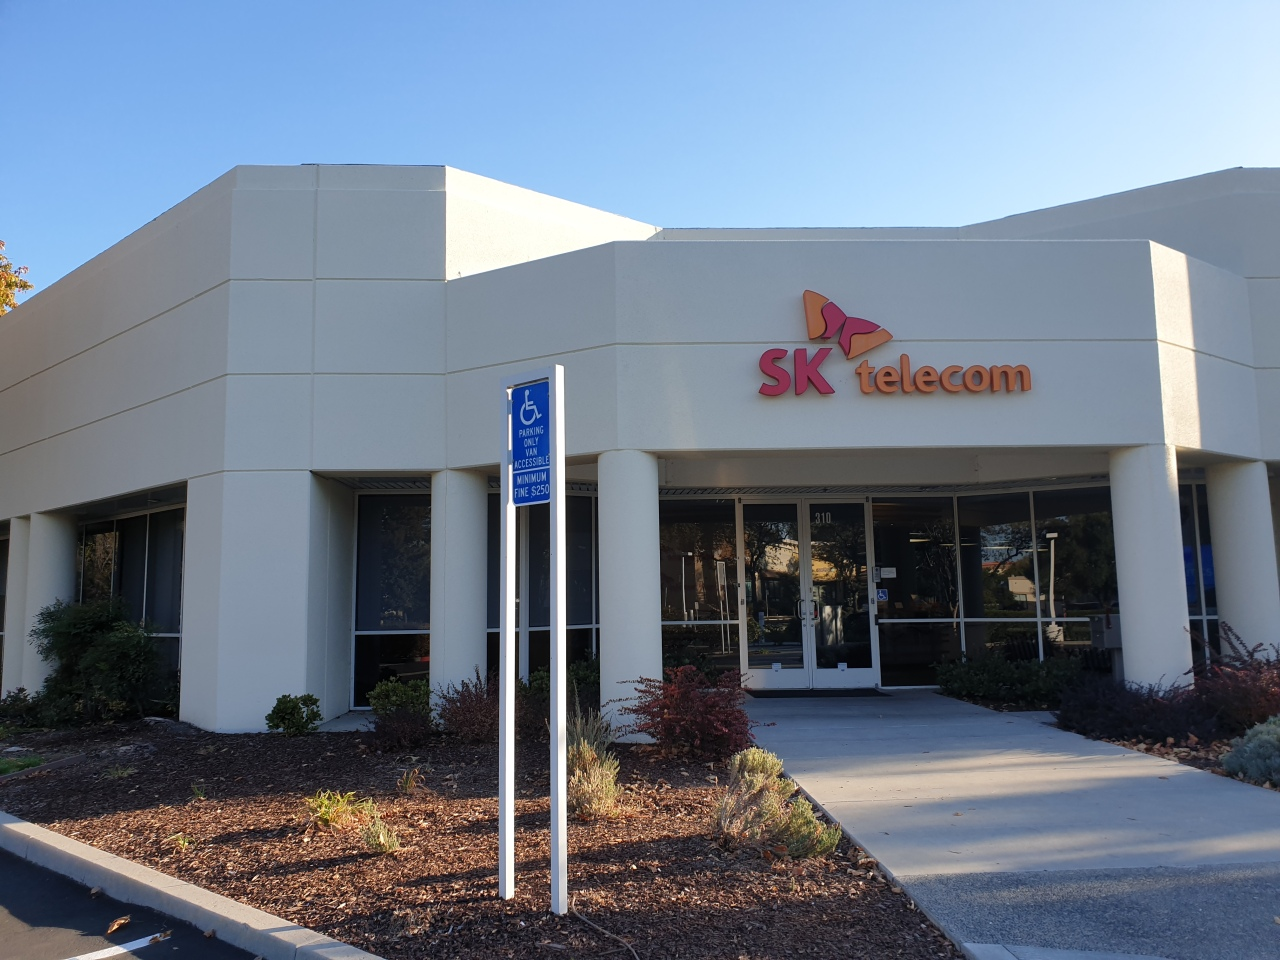 SK Telecom America's sharing office building in Sunnyvale (Song Su-hyun/The Korea Herald)